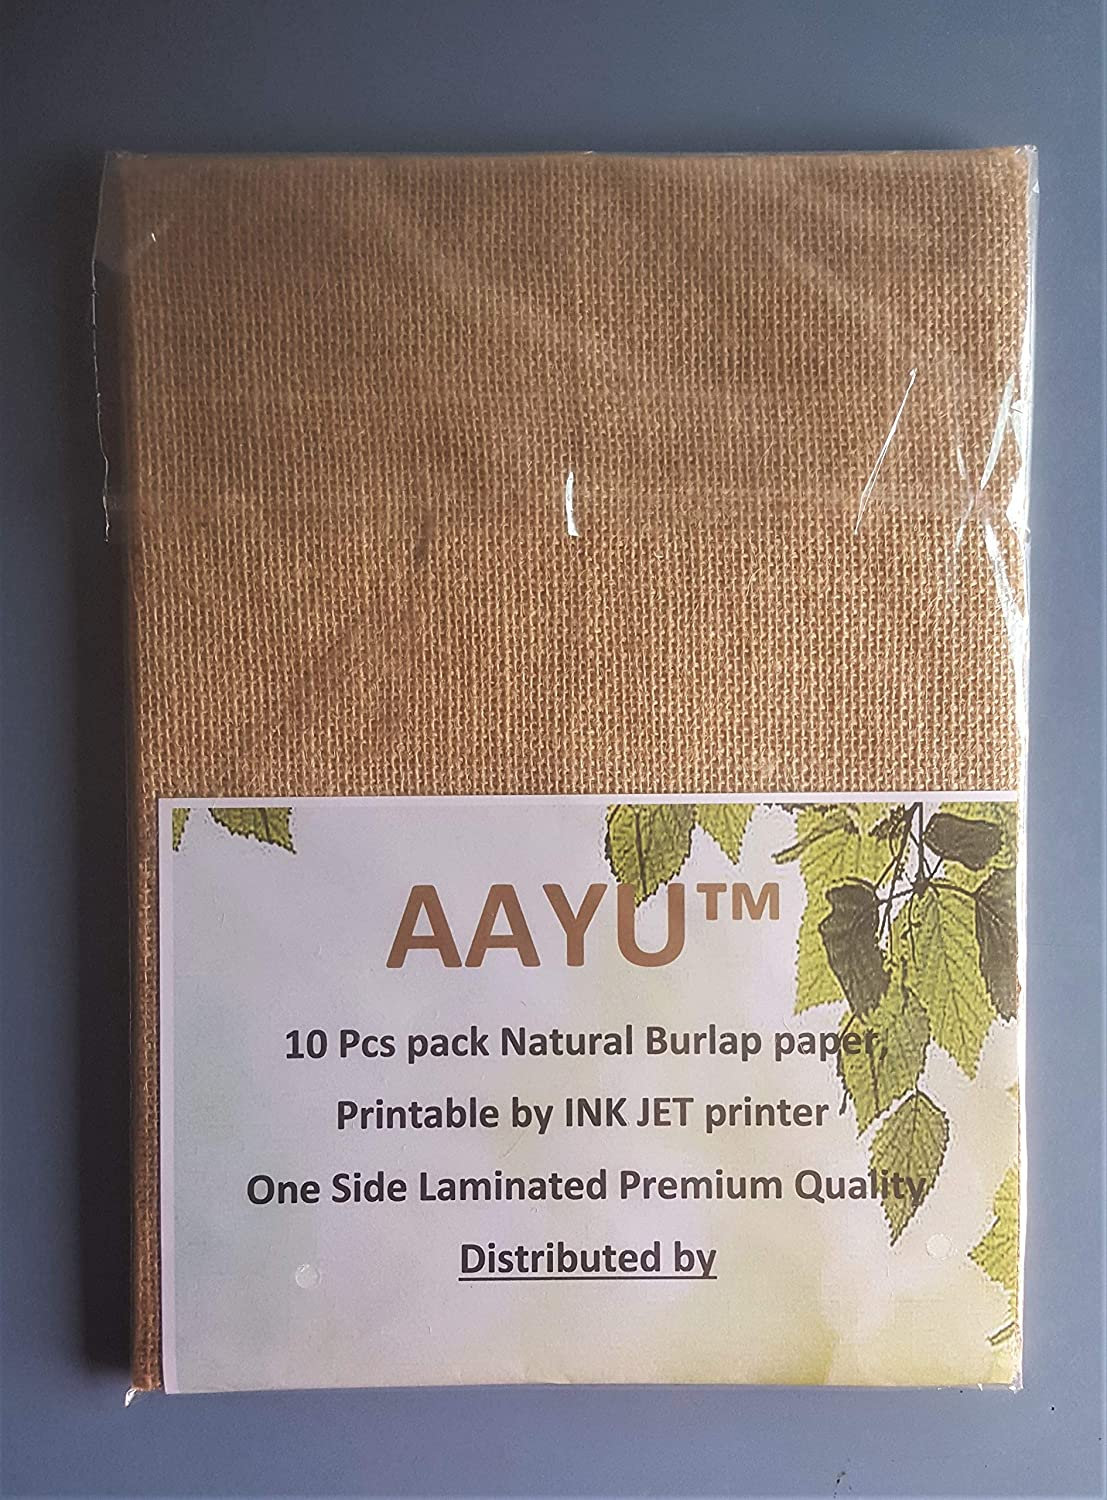 picture regarding Printable Burlap Paper identified as AAYU The vast majority Printable Jute Burlap Paper A4 Laminated Undeniable Jute-Paper Above 8.5 x 11.5 Inches 10 Piece Pack + 1 A lot more Print All the things with Ink Jet